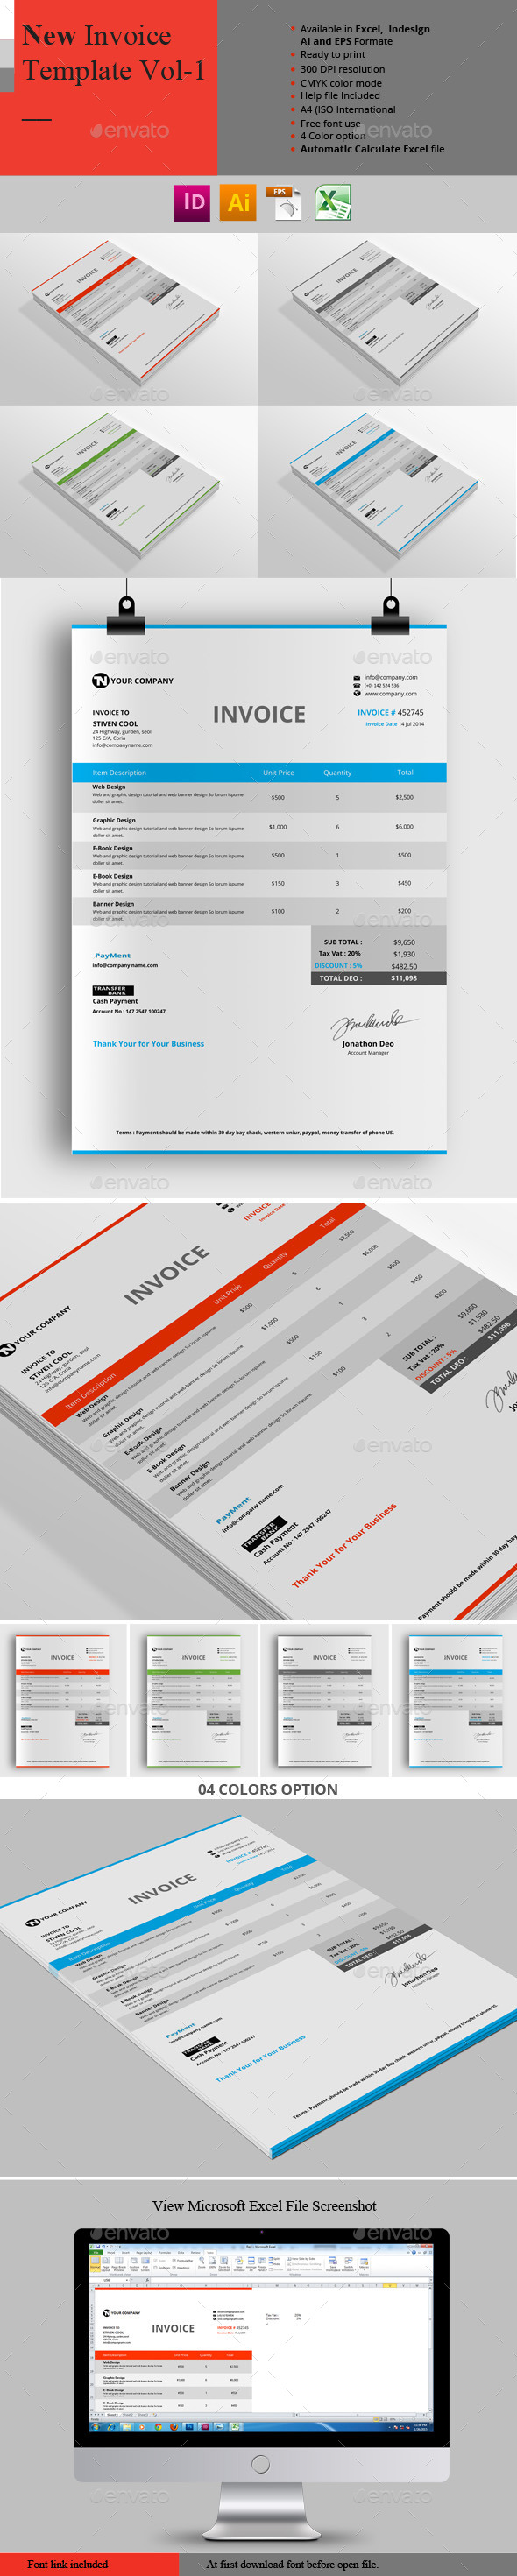 GraphicRiver New Invoice Template Vol-1 10239879